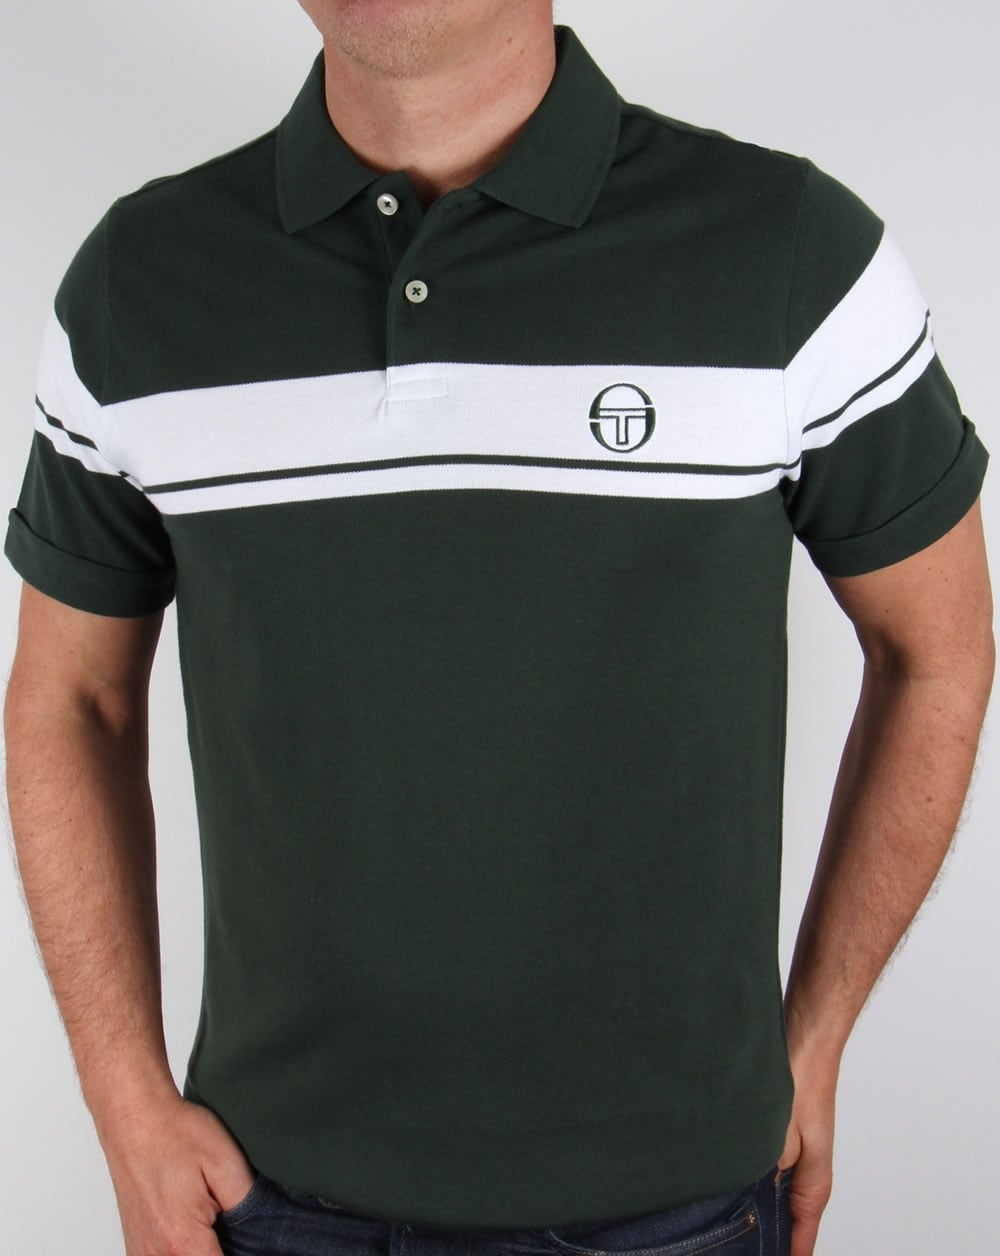 Sergio tacchini young line polo shirt forest green white for Forest green polo shirts